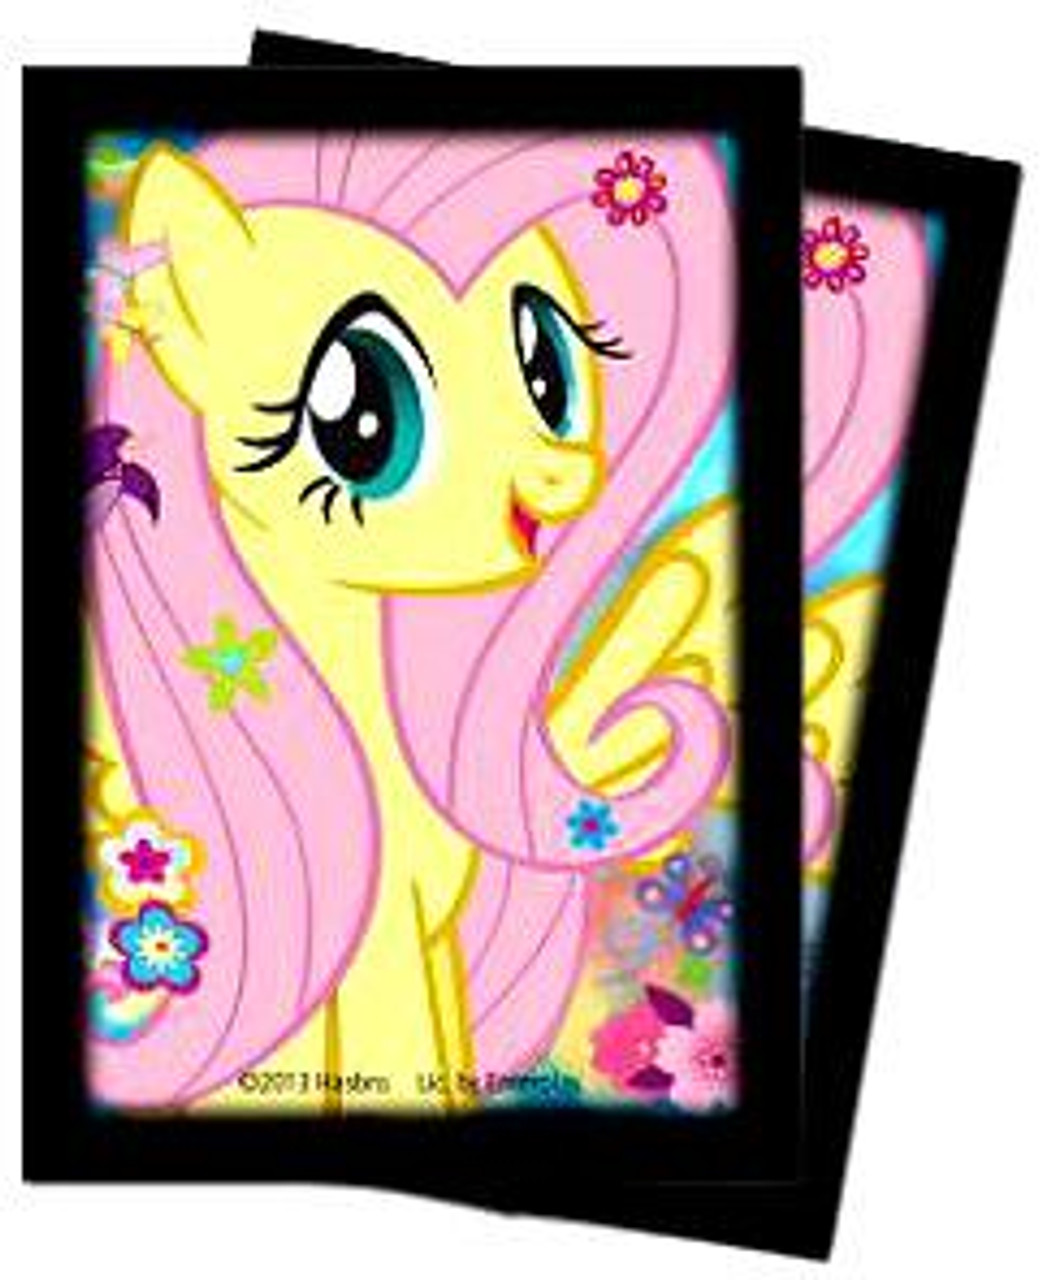 Ultra Pro My Little Pony Card Supplies Fluttershy Deck Protector Small Card Sleeves [60 Count]